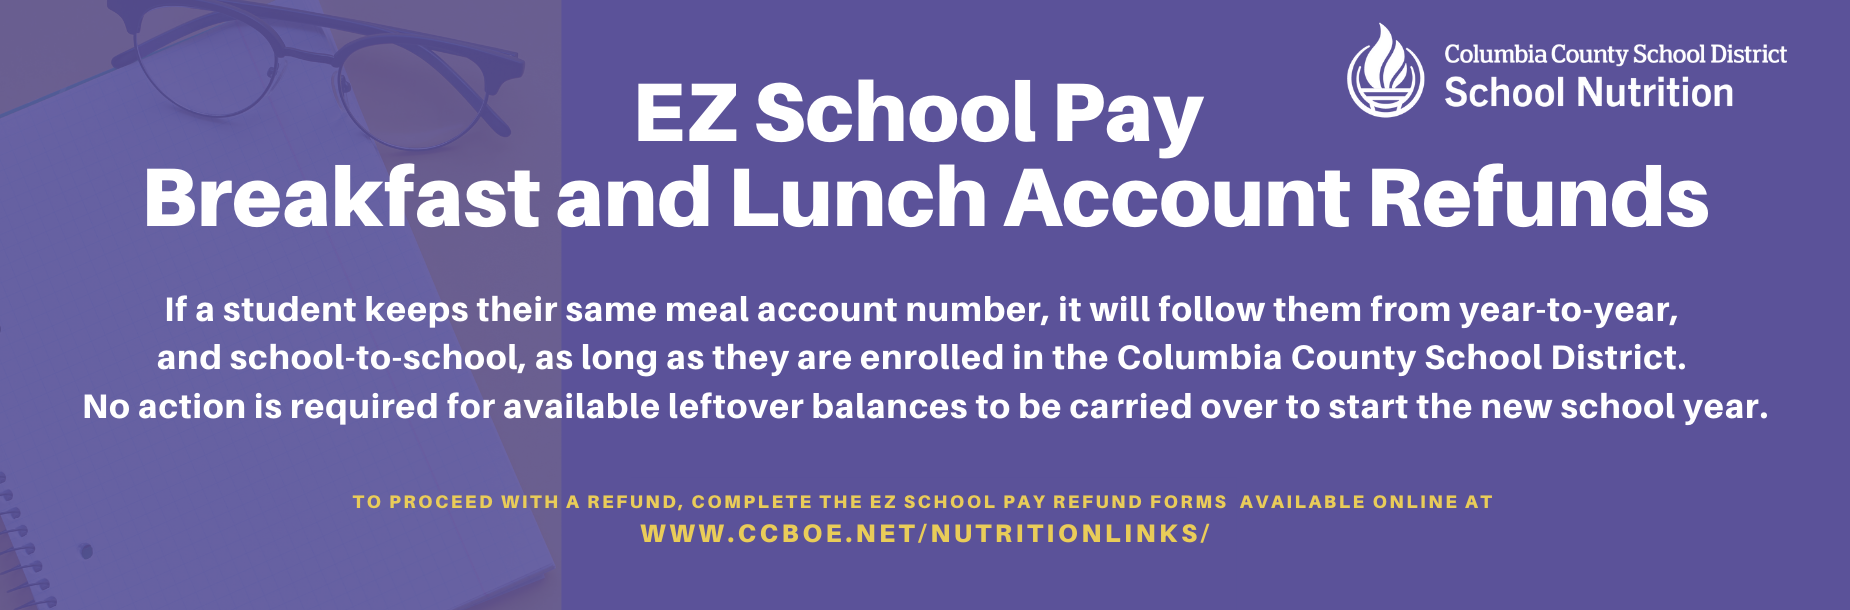 Lunch and breakfast refund infographic